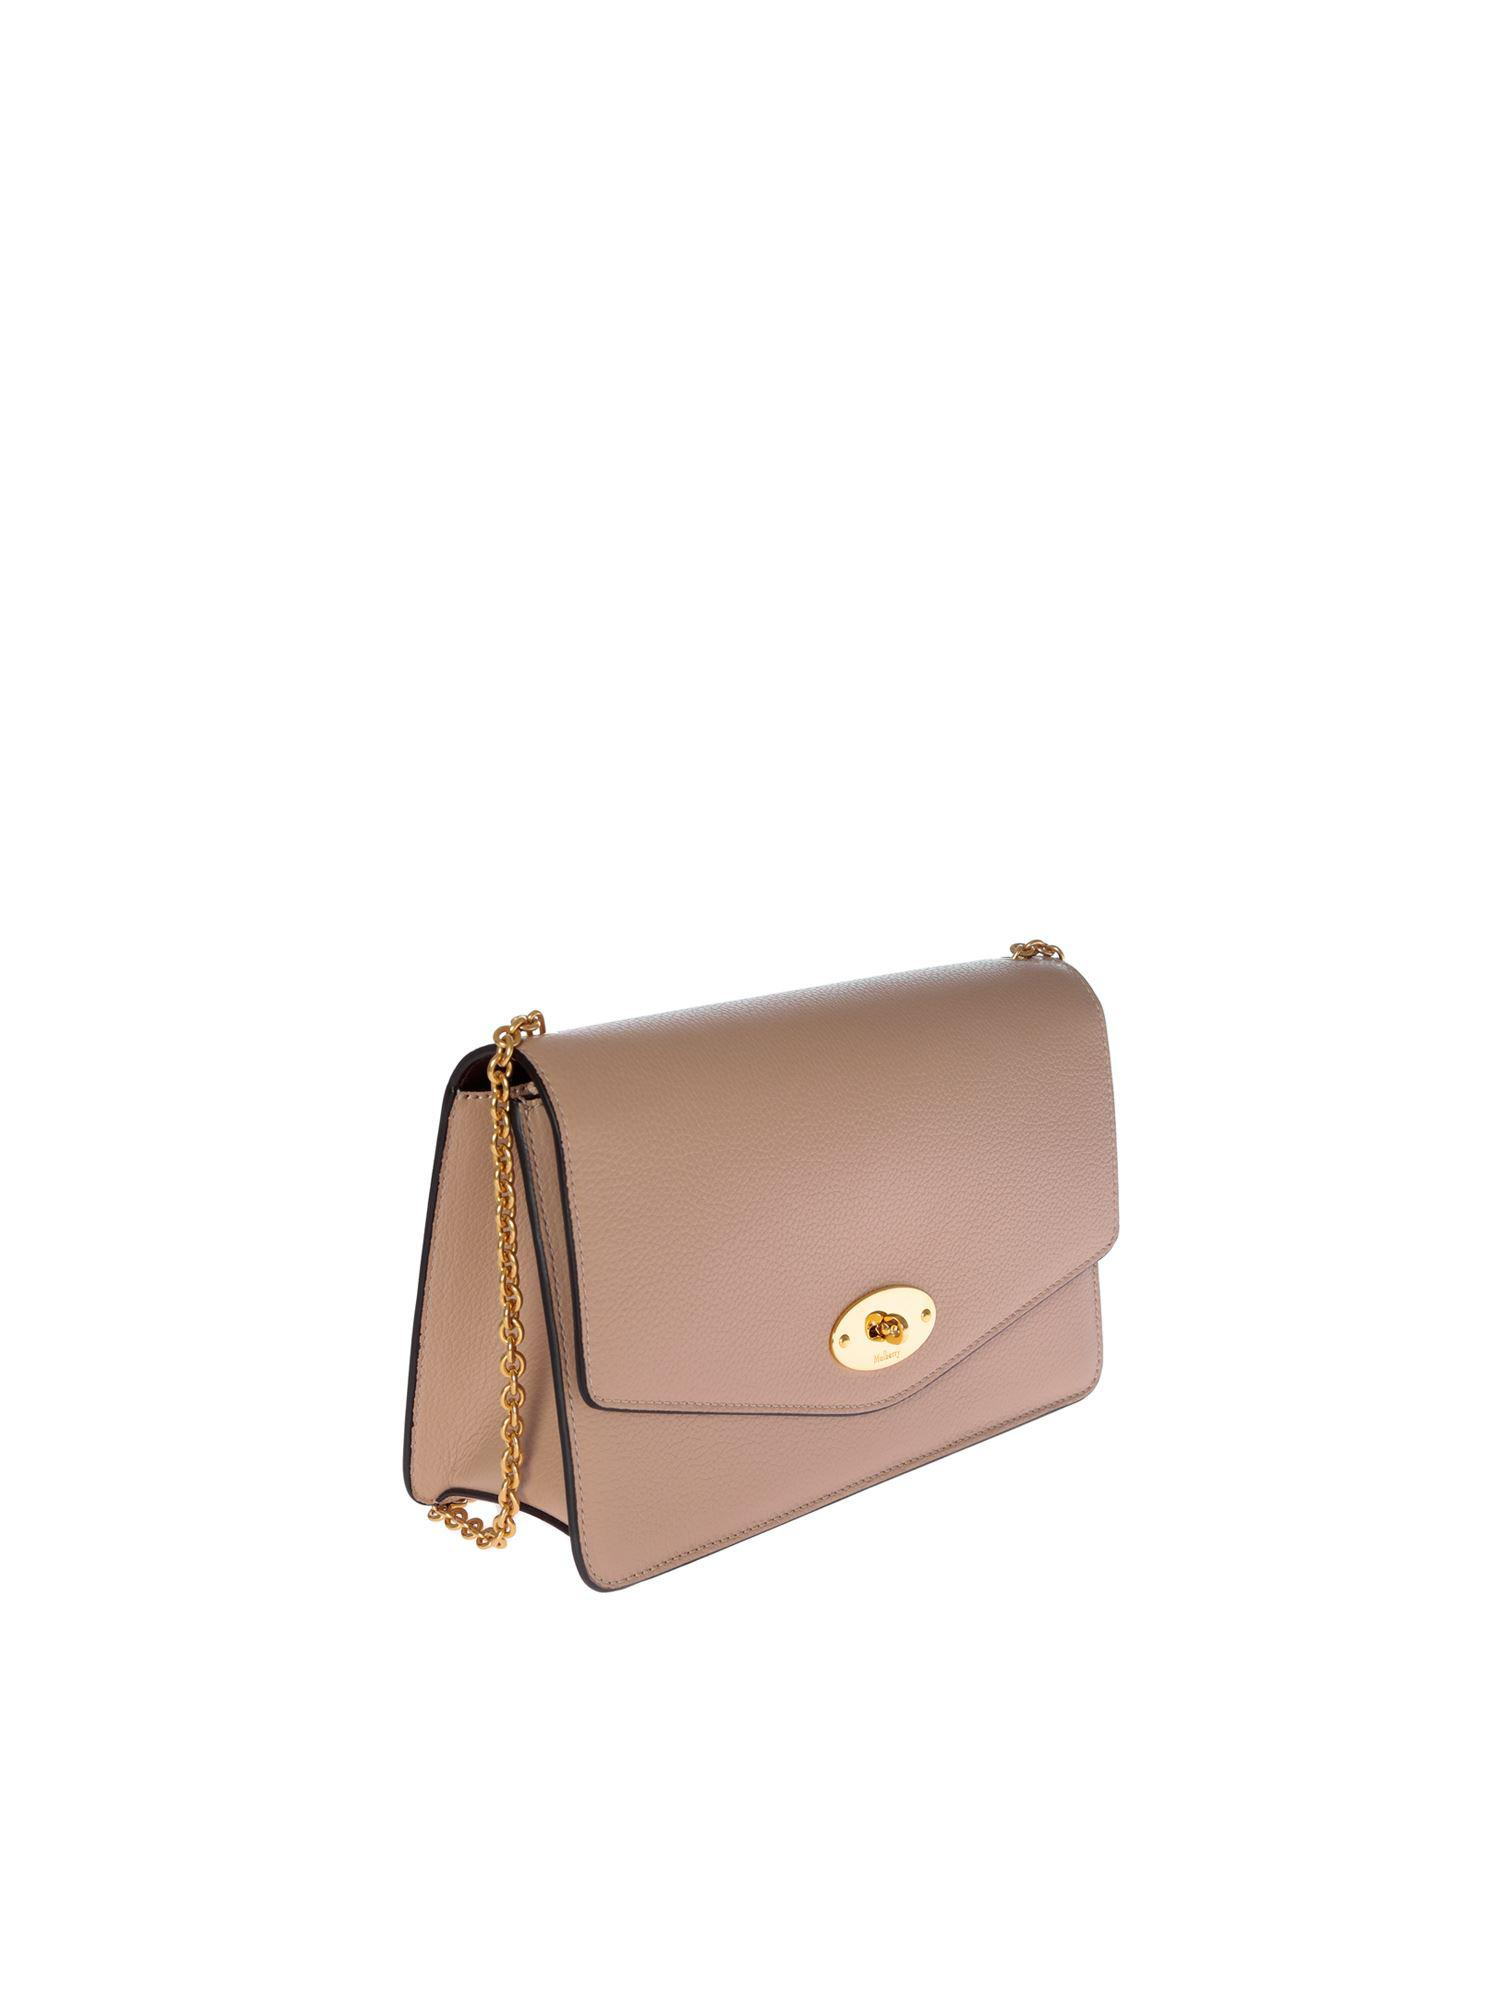 2b65ee70d6 Mulberry - Darley Bag In Pink Grained Leather - Lyst. View fullscreen